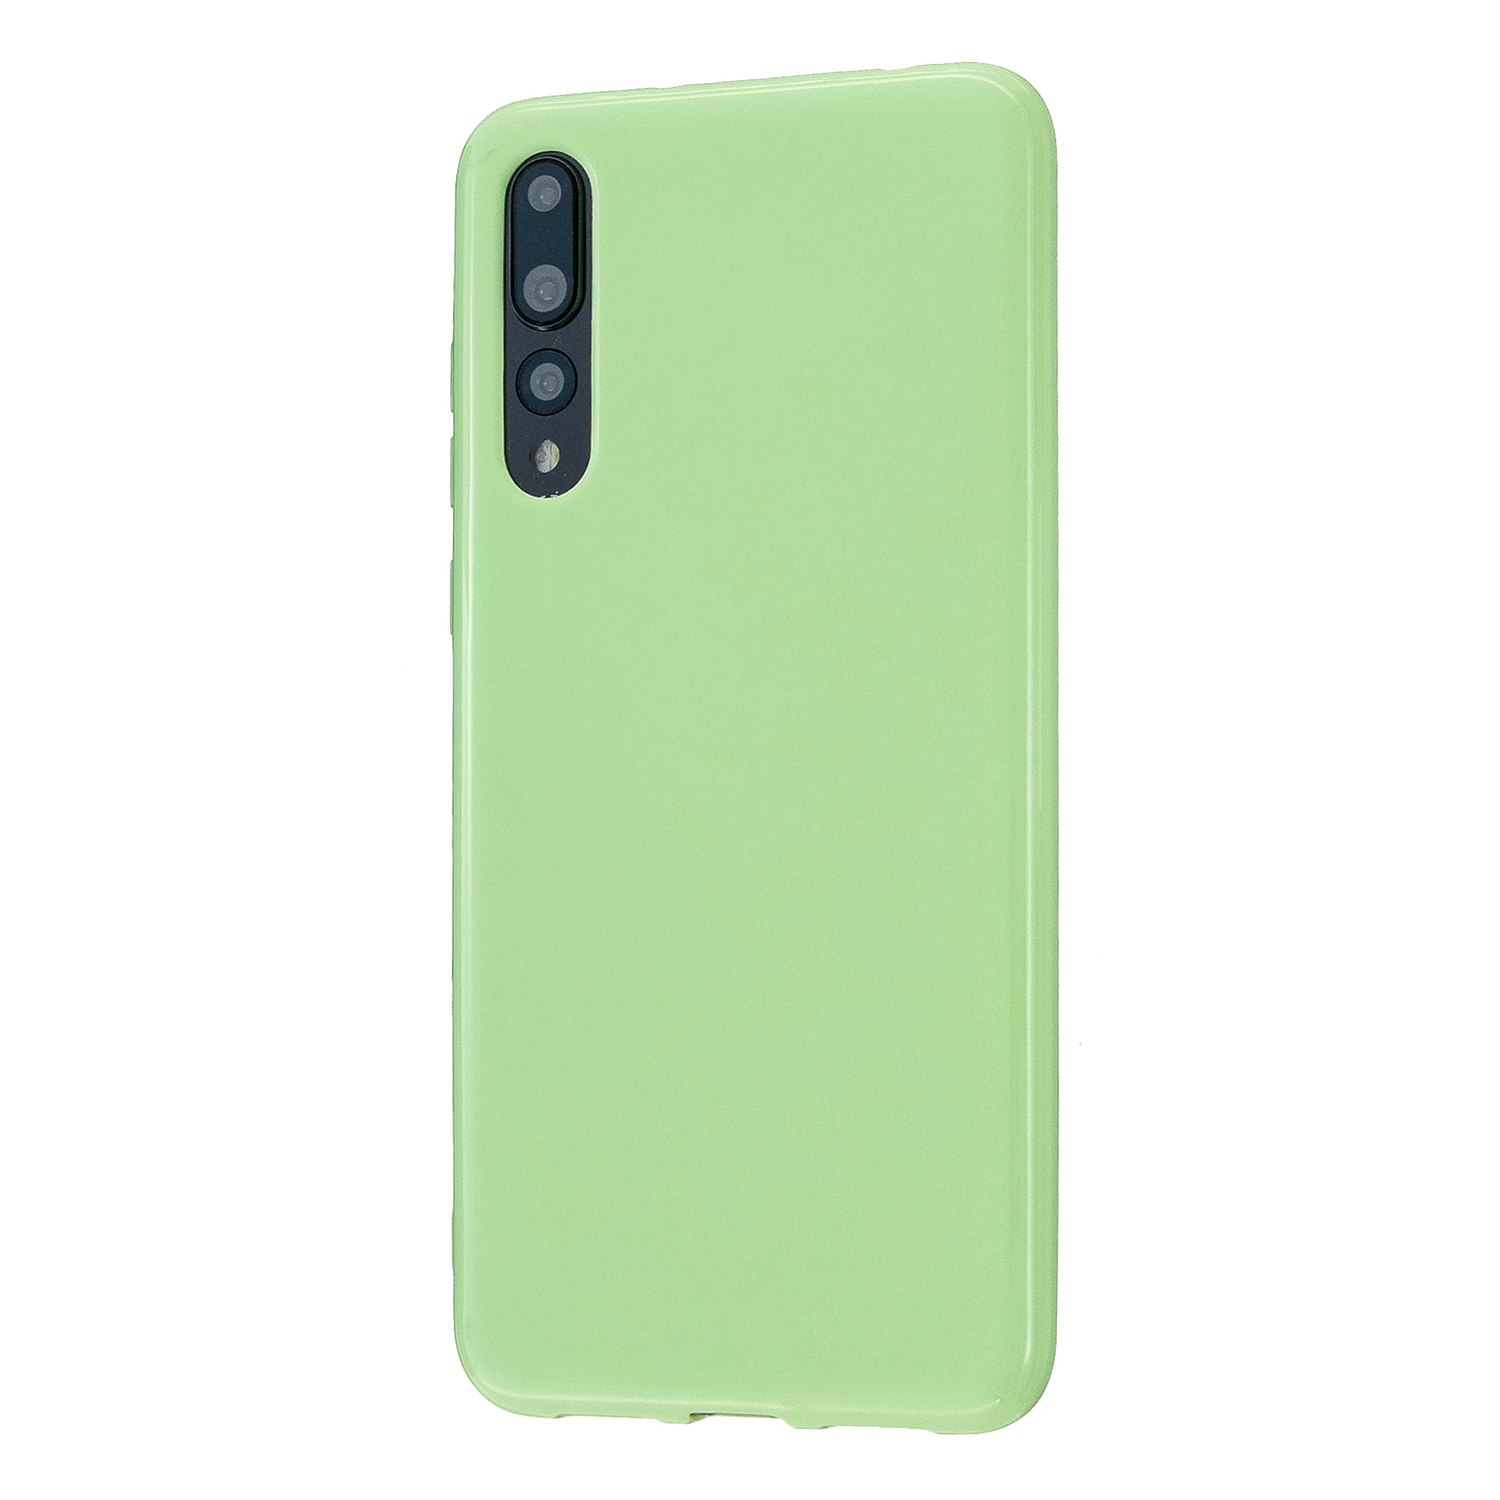 For HUAWEI P20/P20 Lite/P20 Pro Cellphone Case Simple Profile Soft TPU Phone Case Anti-Slip Smartphone Cover Fluorescent green